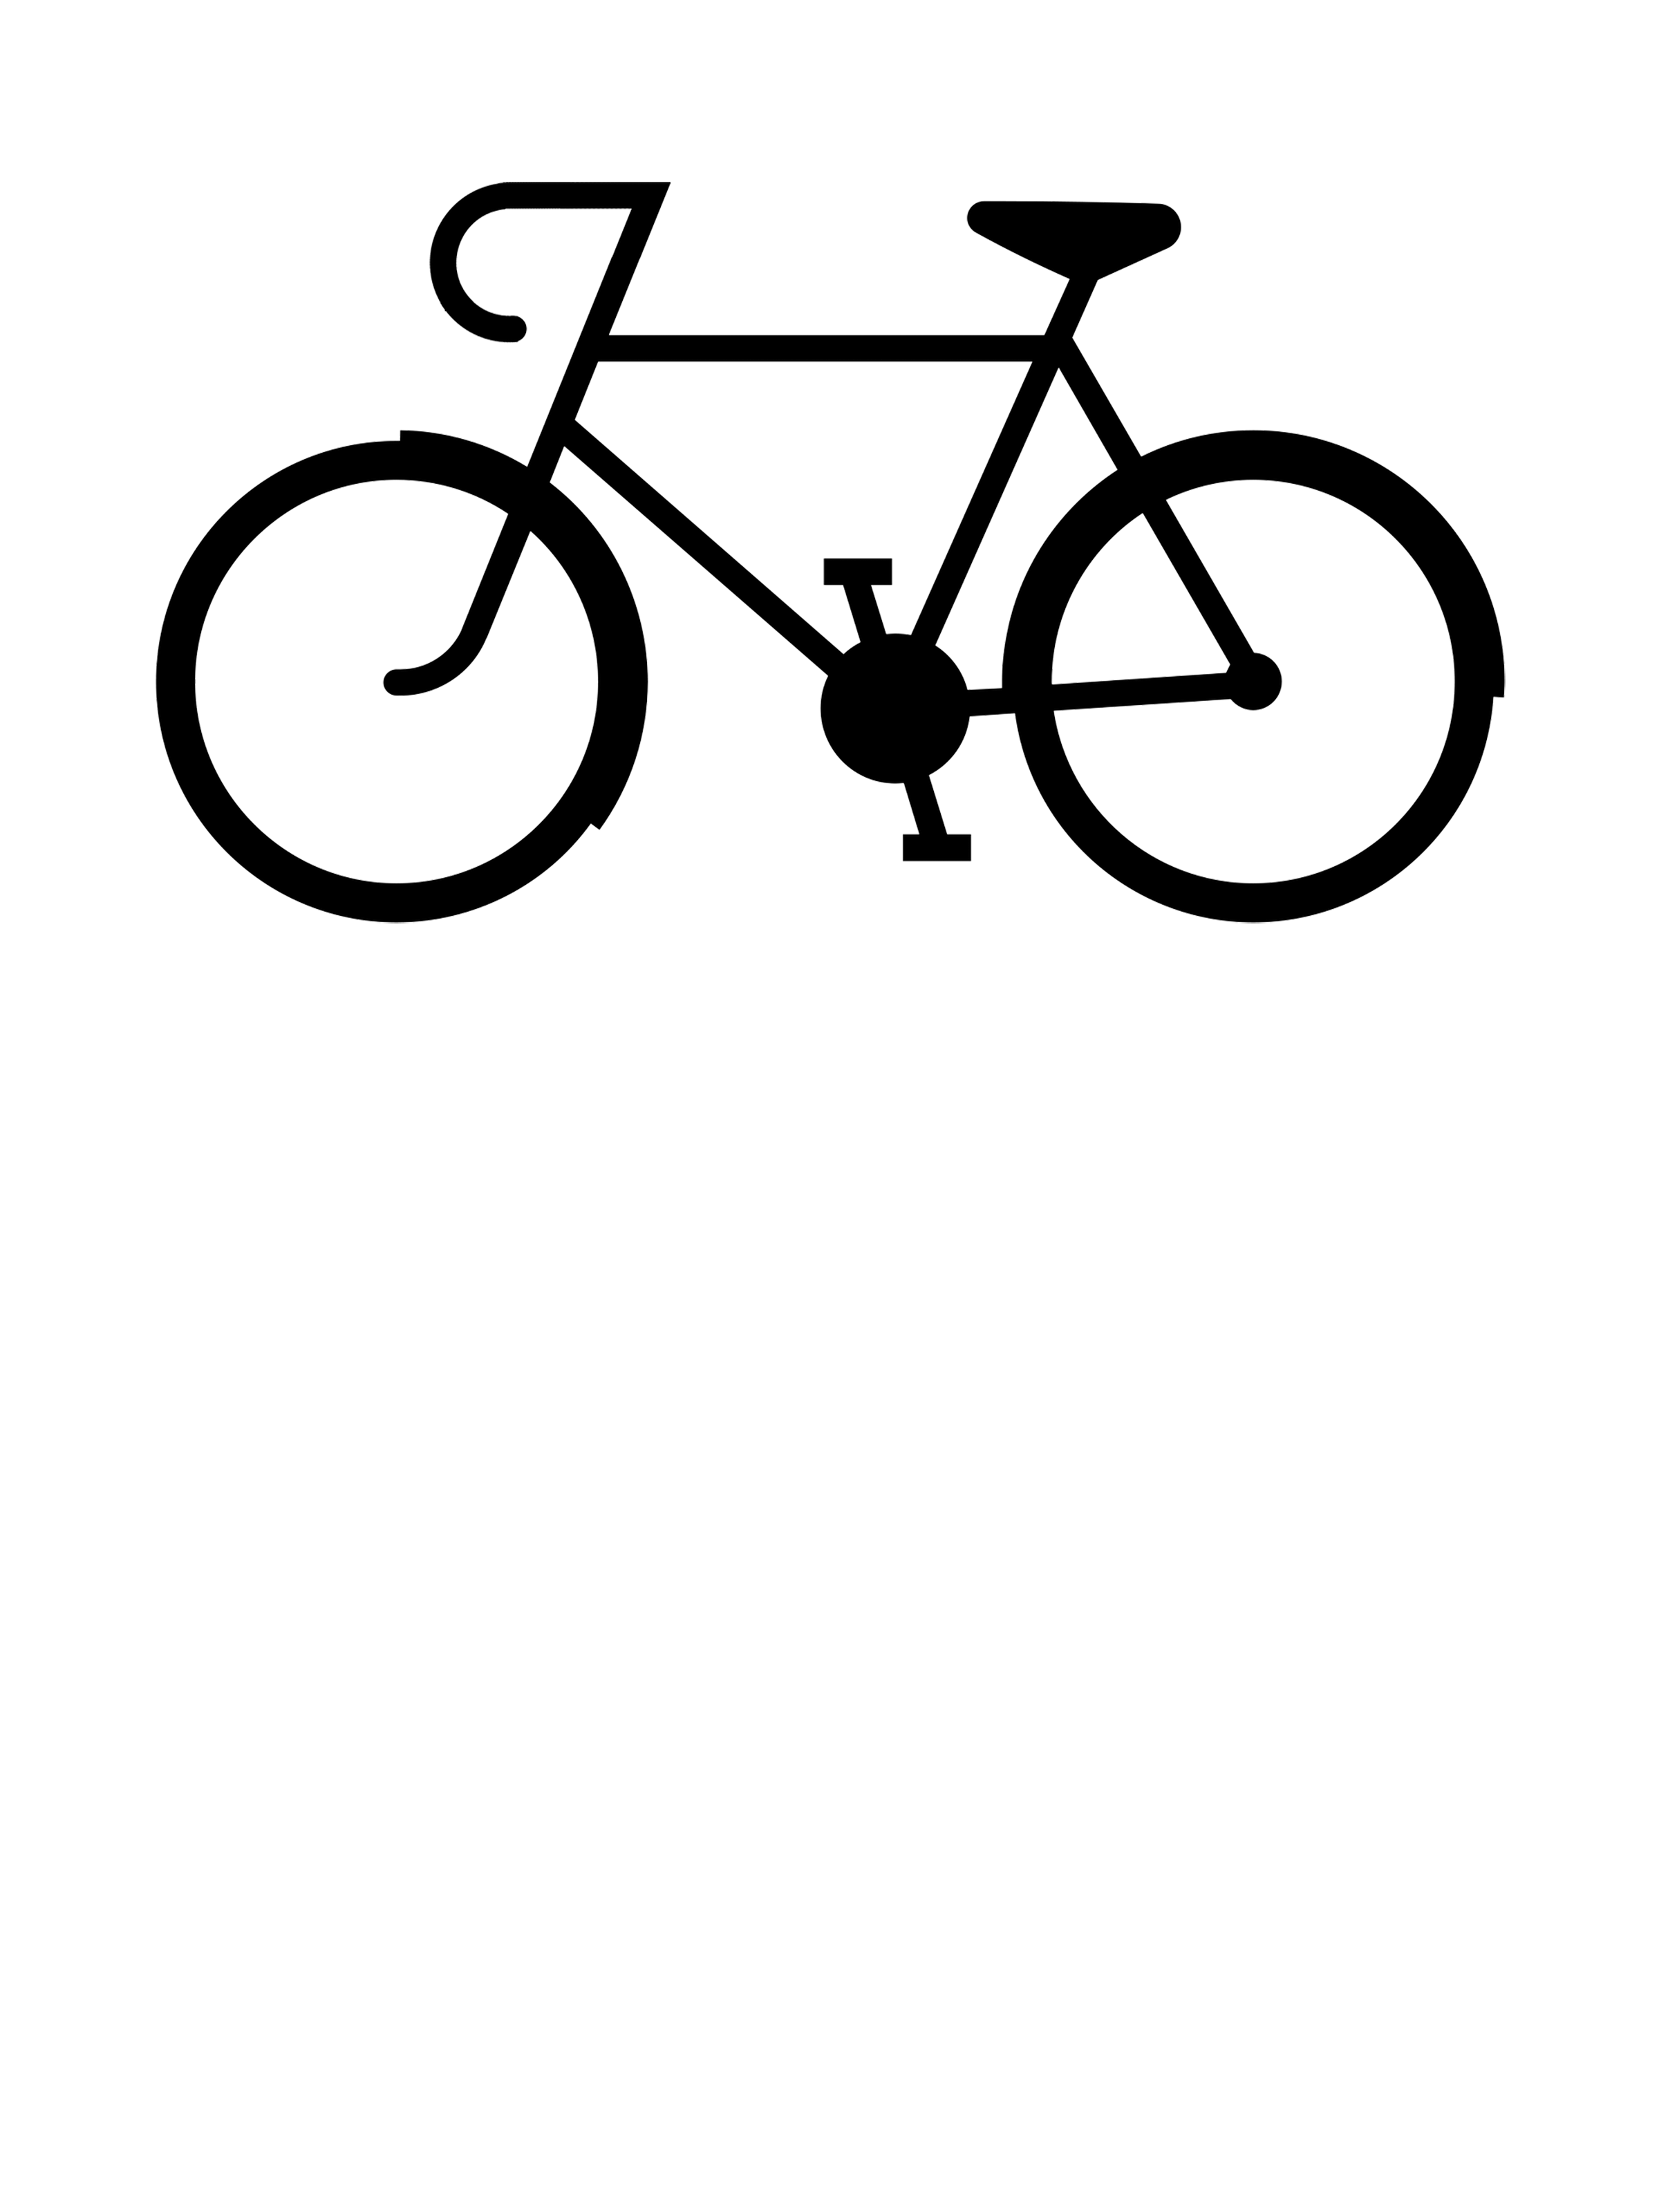 0116 – Just a Simple Bicycle